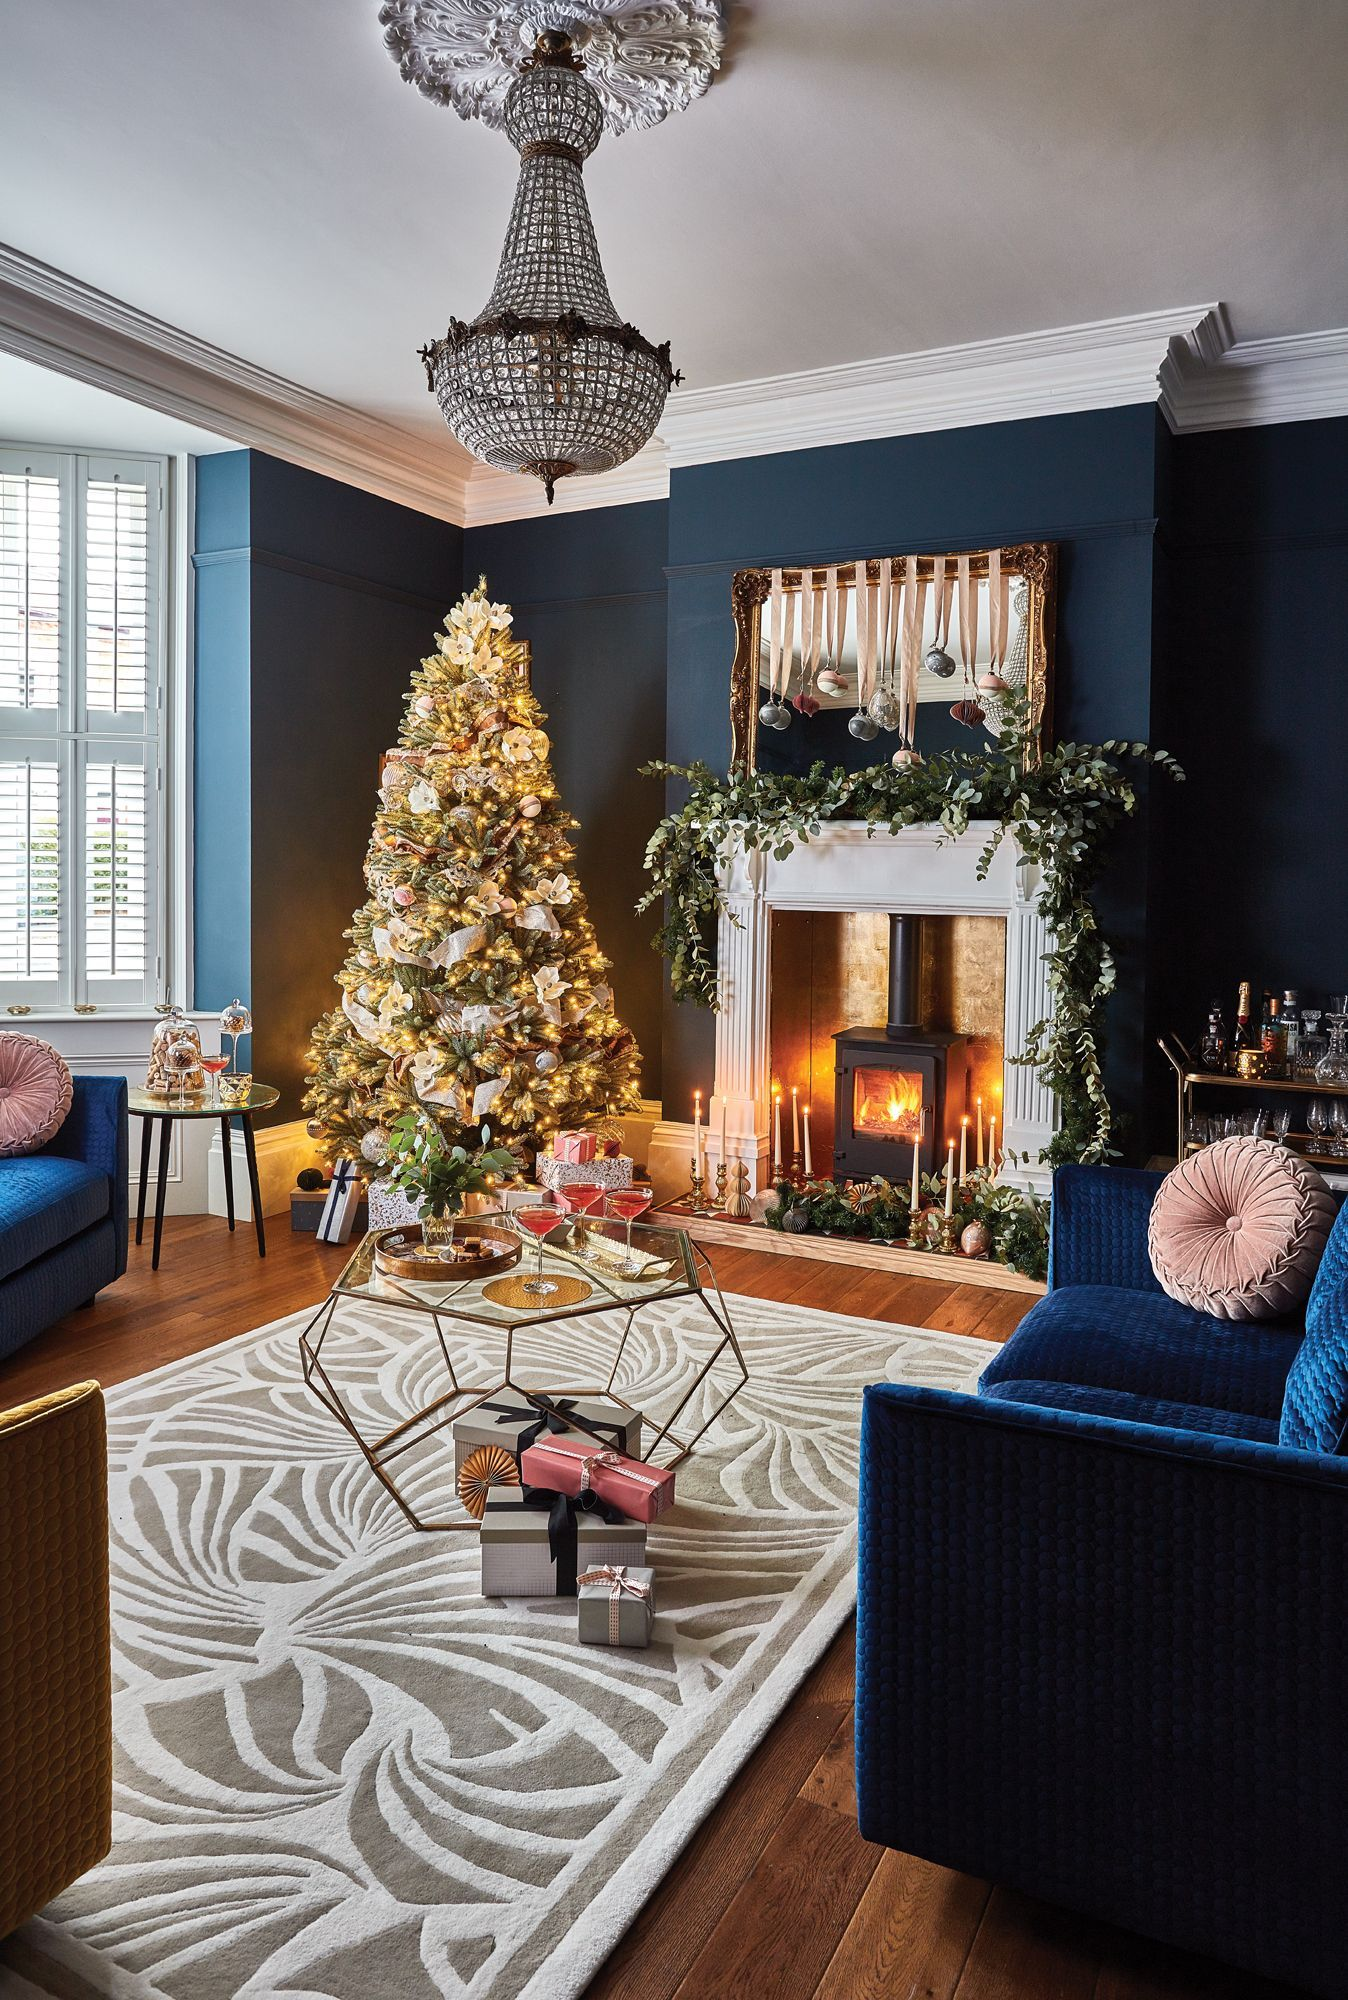 Real Home A Victorian Renovation With A Modern Festive Twist Real Homes Festive Home Renovation V Christmas Decor Trends Lounge Decor Blue Christmas Decor